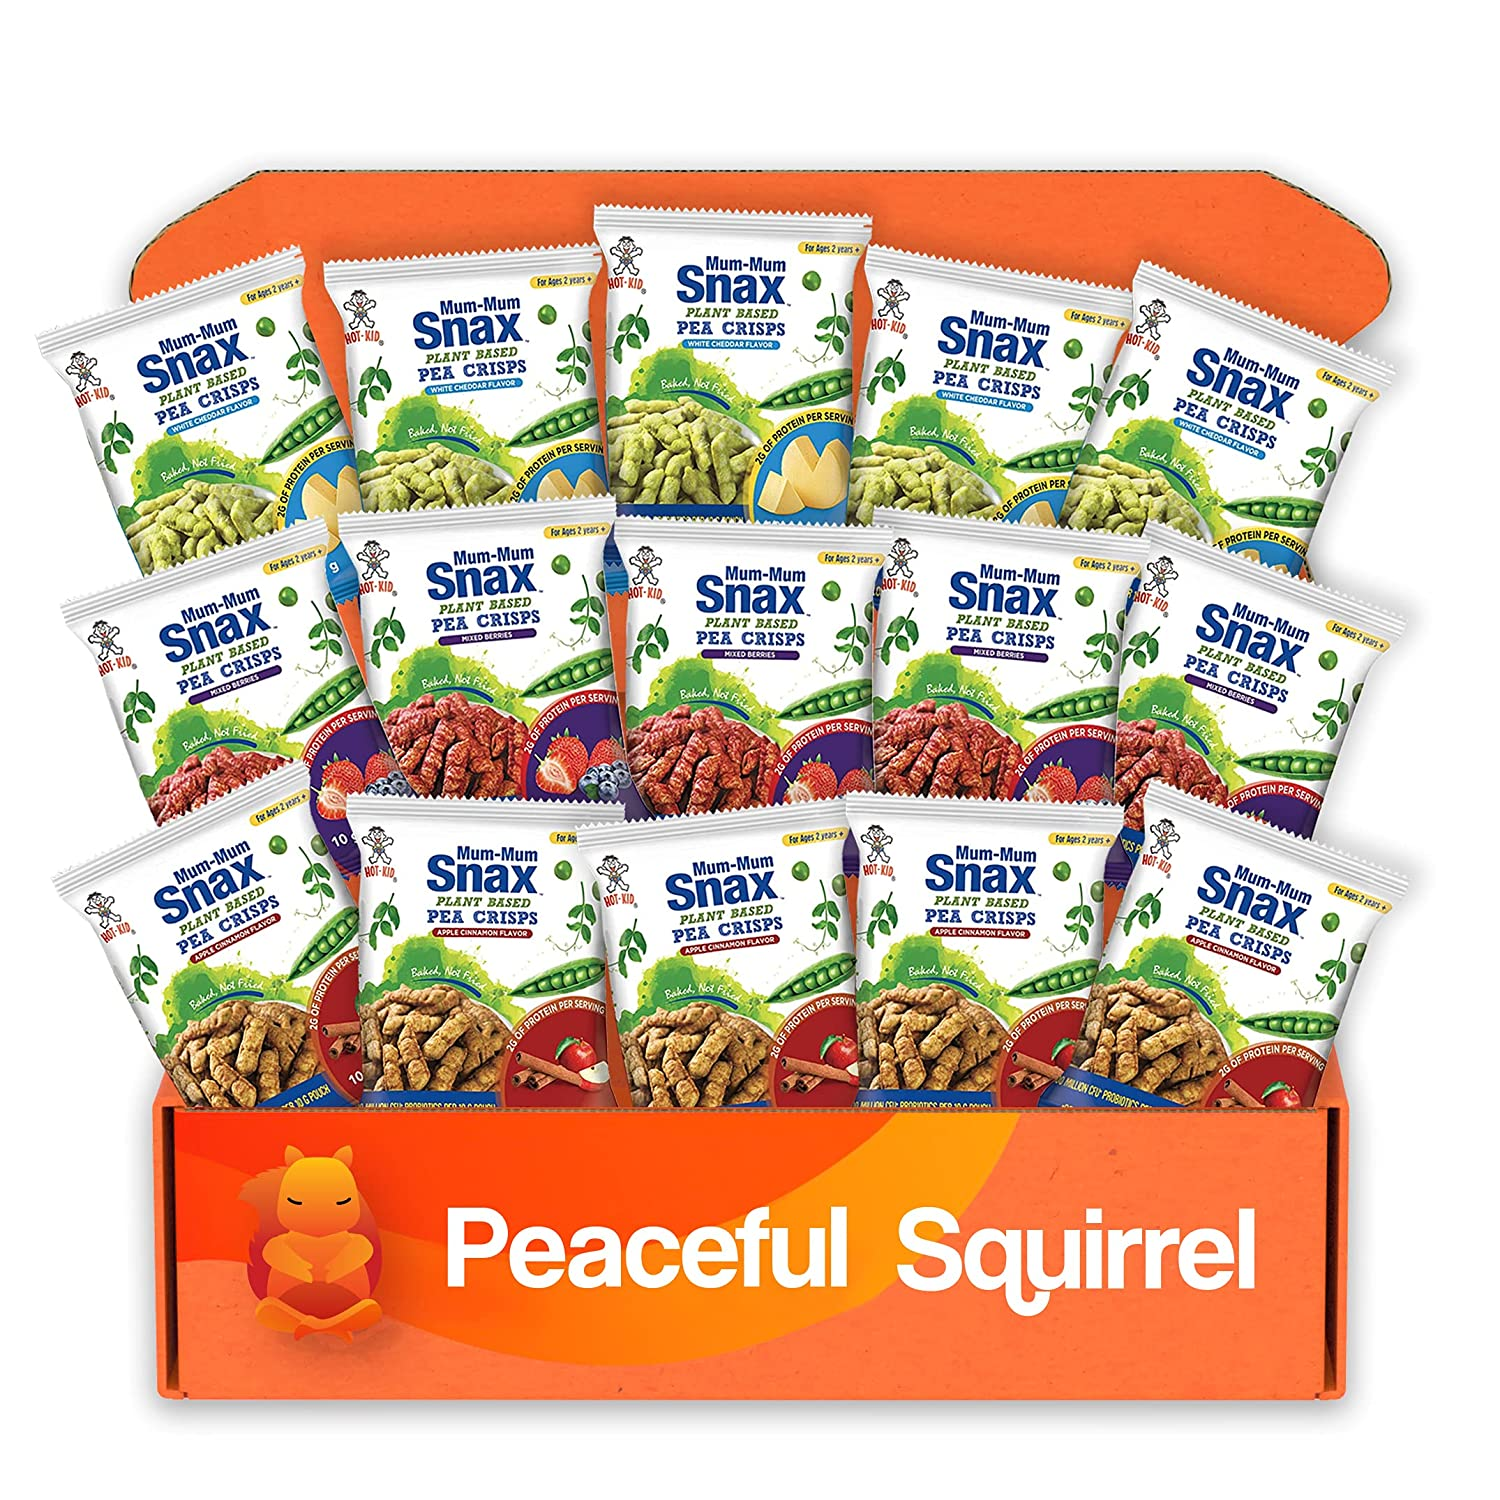 Our shop OFFers the best service Peaceful Squirrel Variety  Mum-Mum Ba Crisps Finally resale start Plant Snax Pea